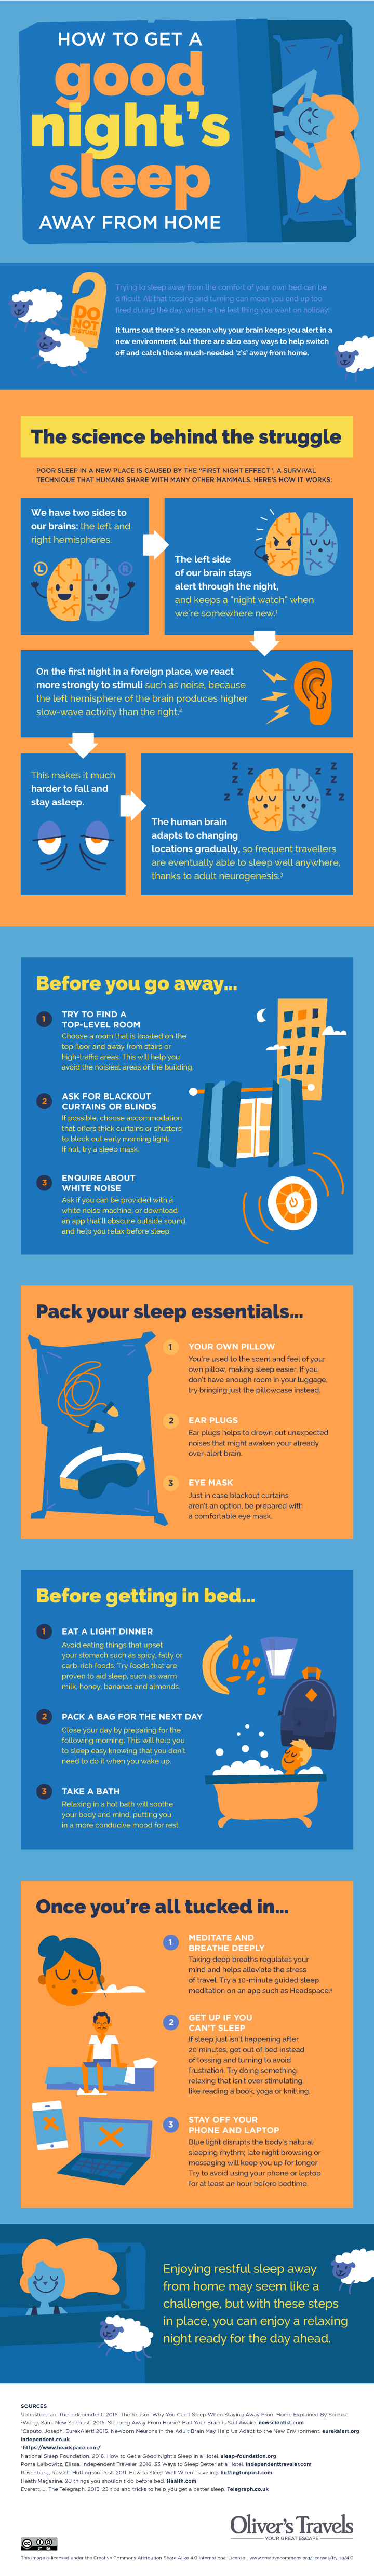 How to Get a Good Night's Sleep Away from Home [Infographic]